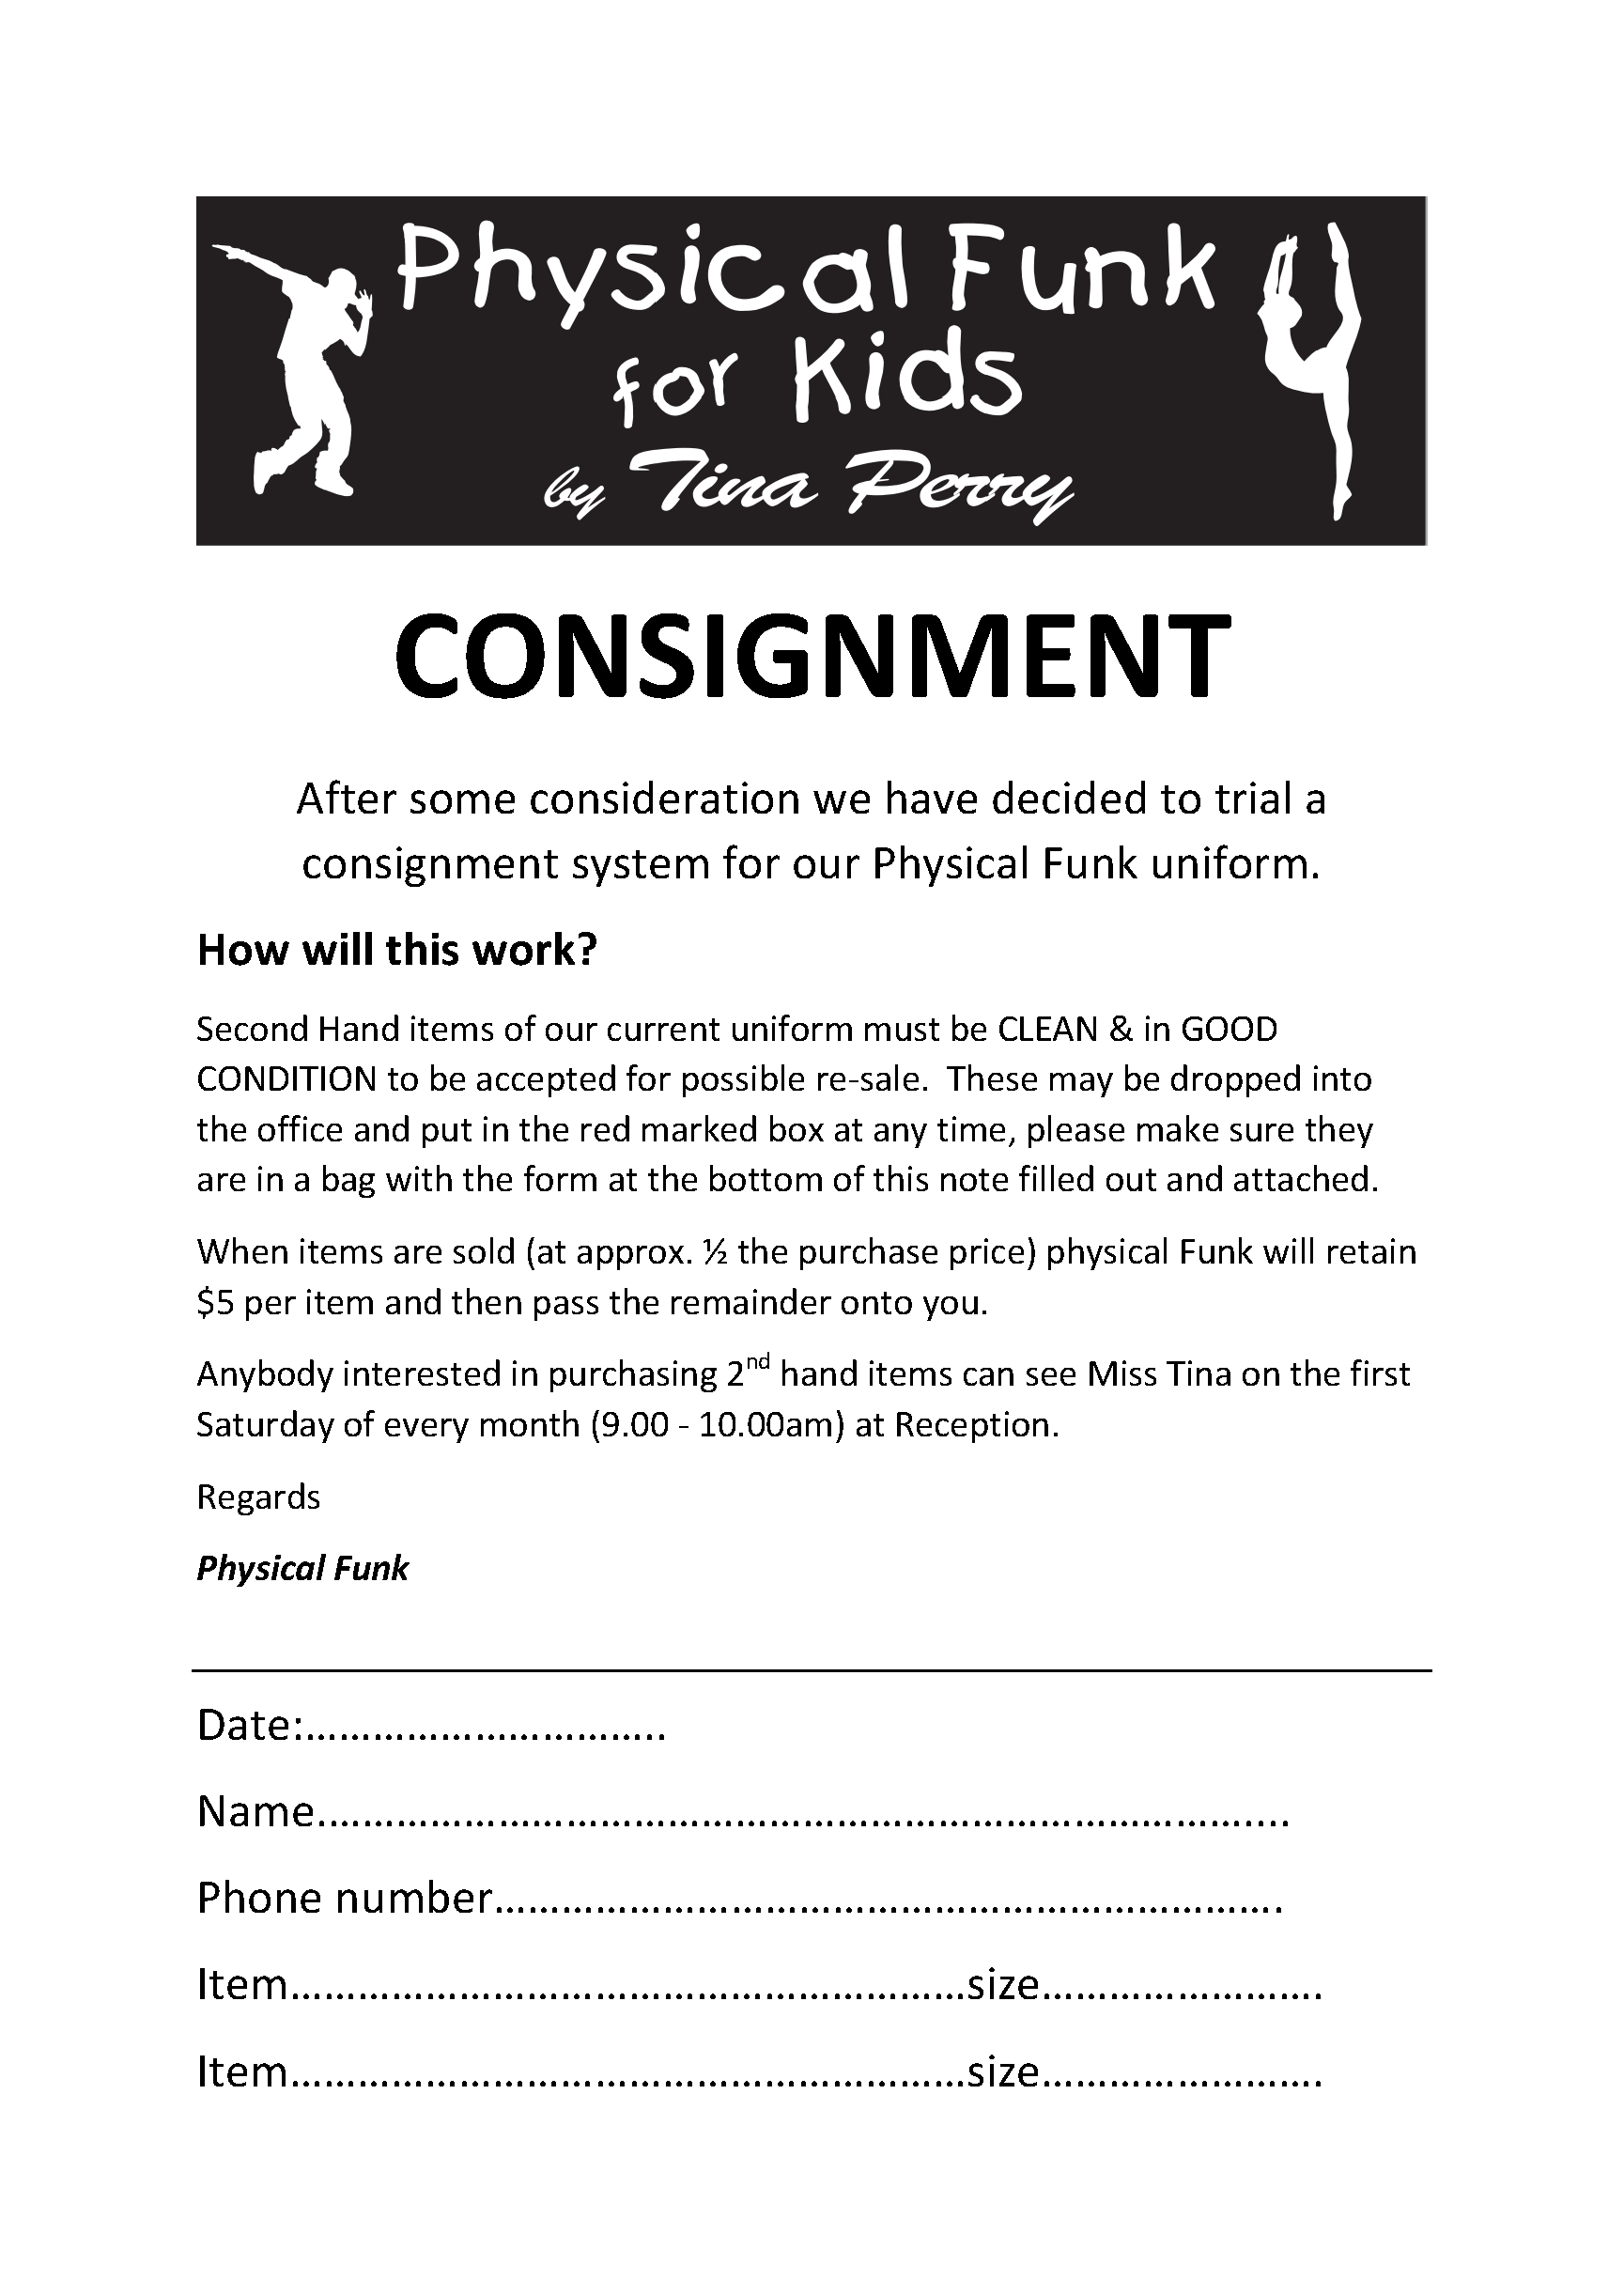 CONSIGNMENT for Uniforms.png